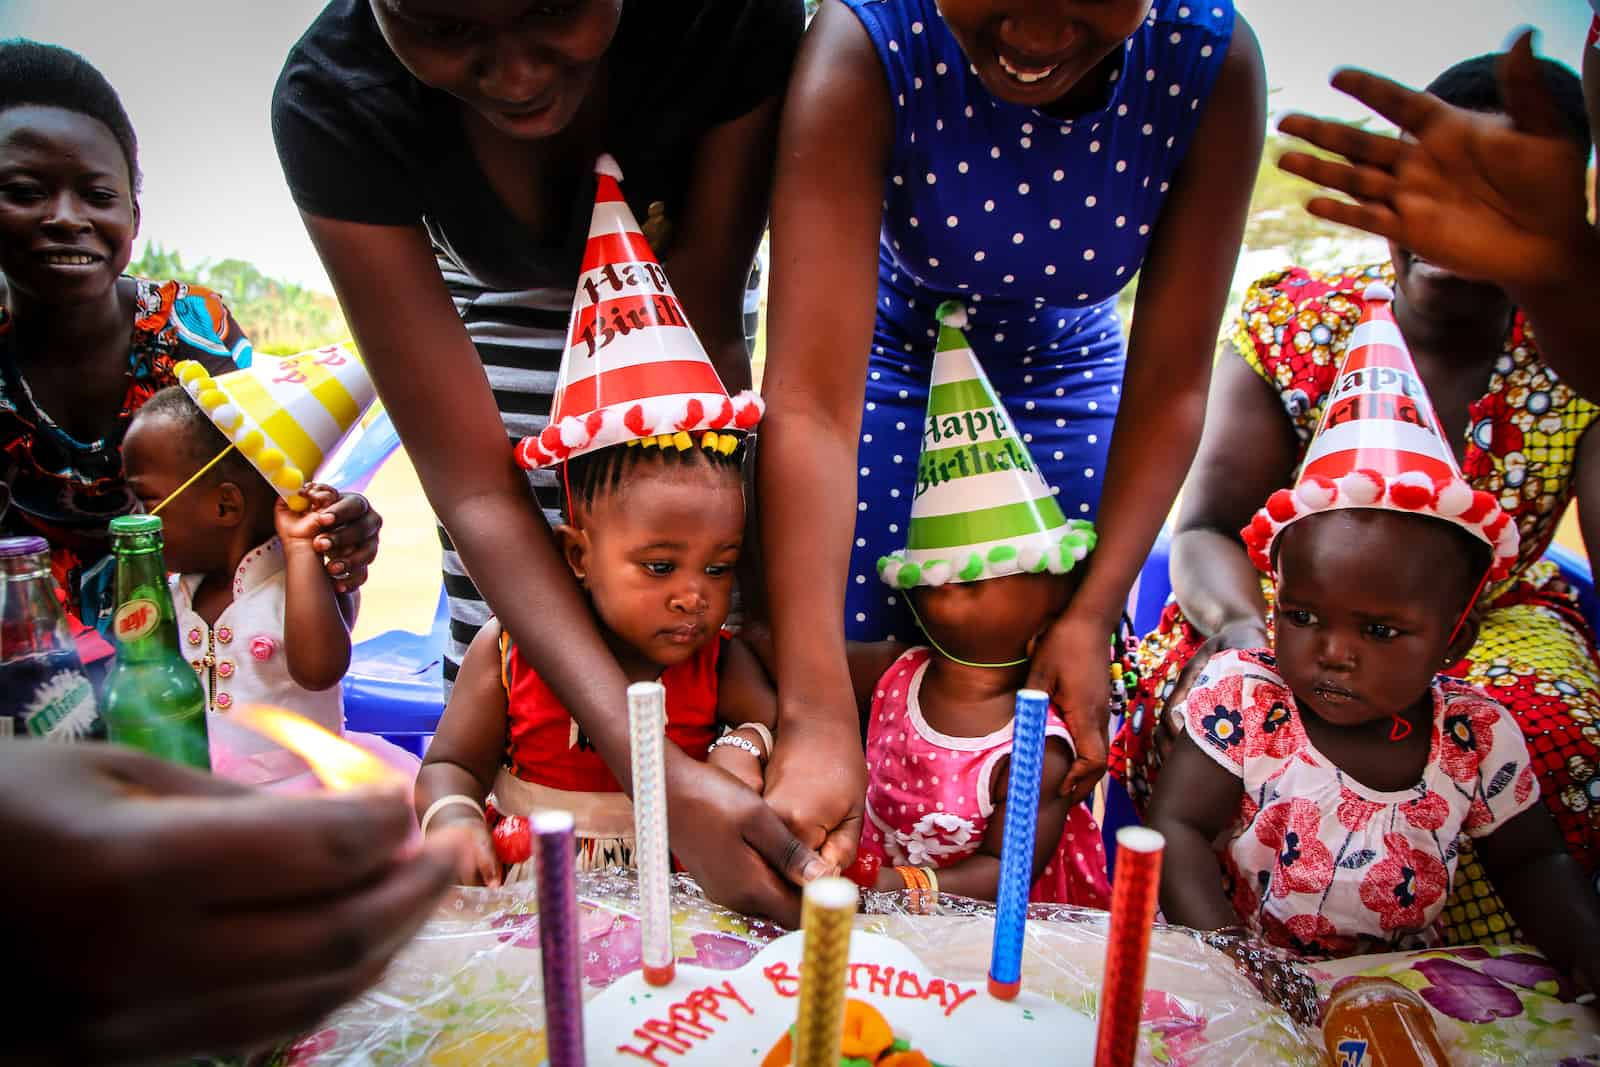 Three babies wearing birthday hats sit in front of a birthday cake.